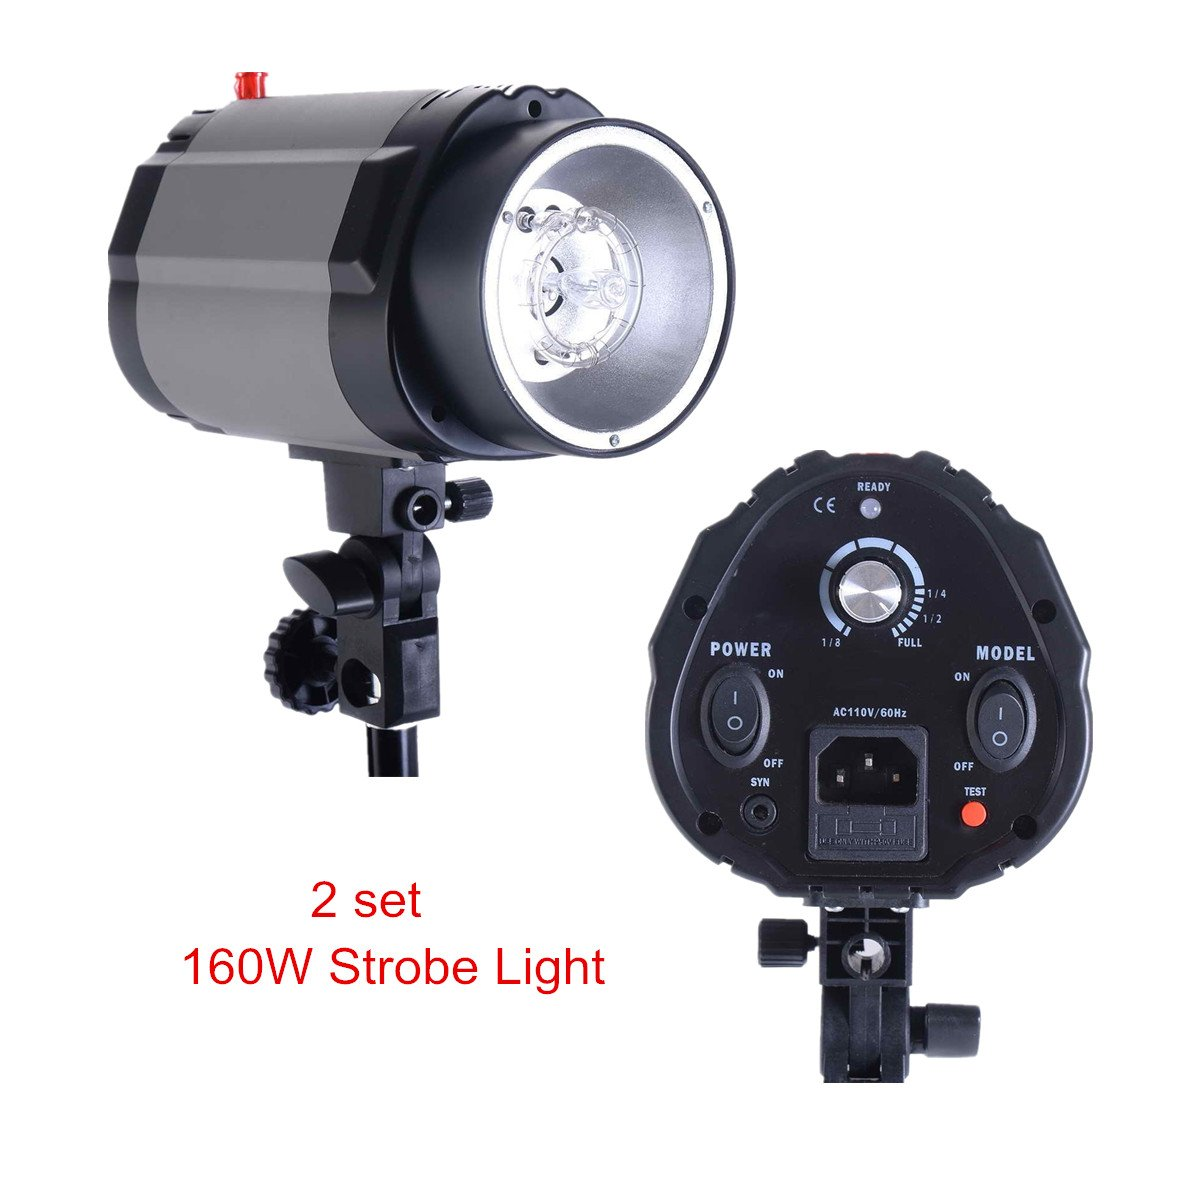 Safstar Professional Photo Studio Strobe Monolight Lighting Kit for Video Shooting, Location and Portrait Photography - 2 x Overhead Boom Light Kit, 2 x Softboxes, 1 x Carrying Bag by S AFSTAR (Image #2)